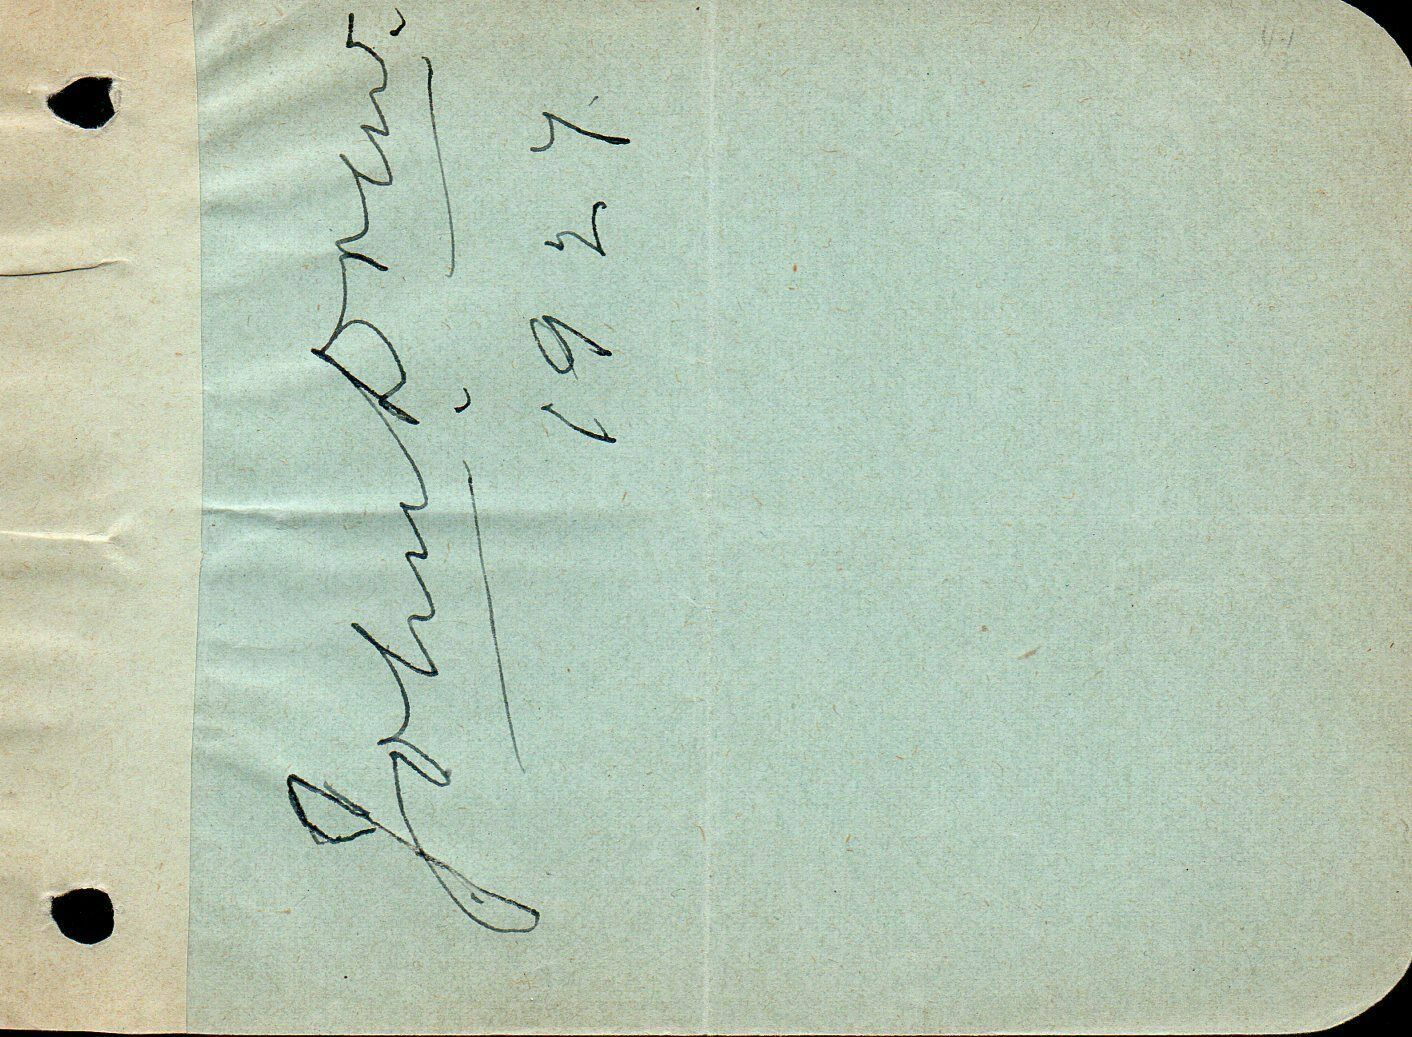 JOHN DREW (JR) Autograph. Nicely signed on album page. Barrymore uncle.